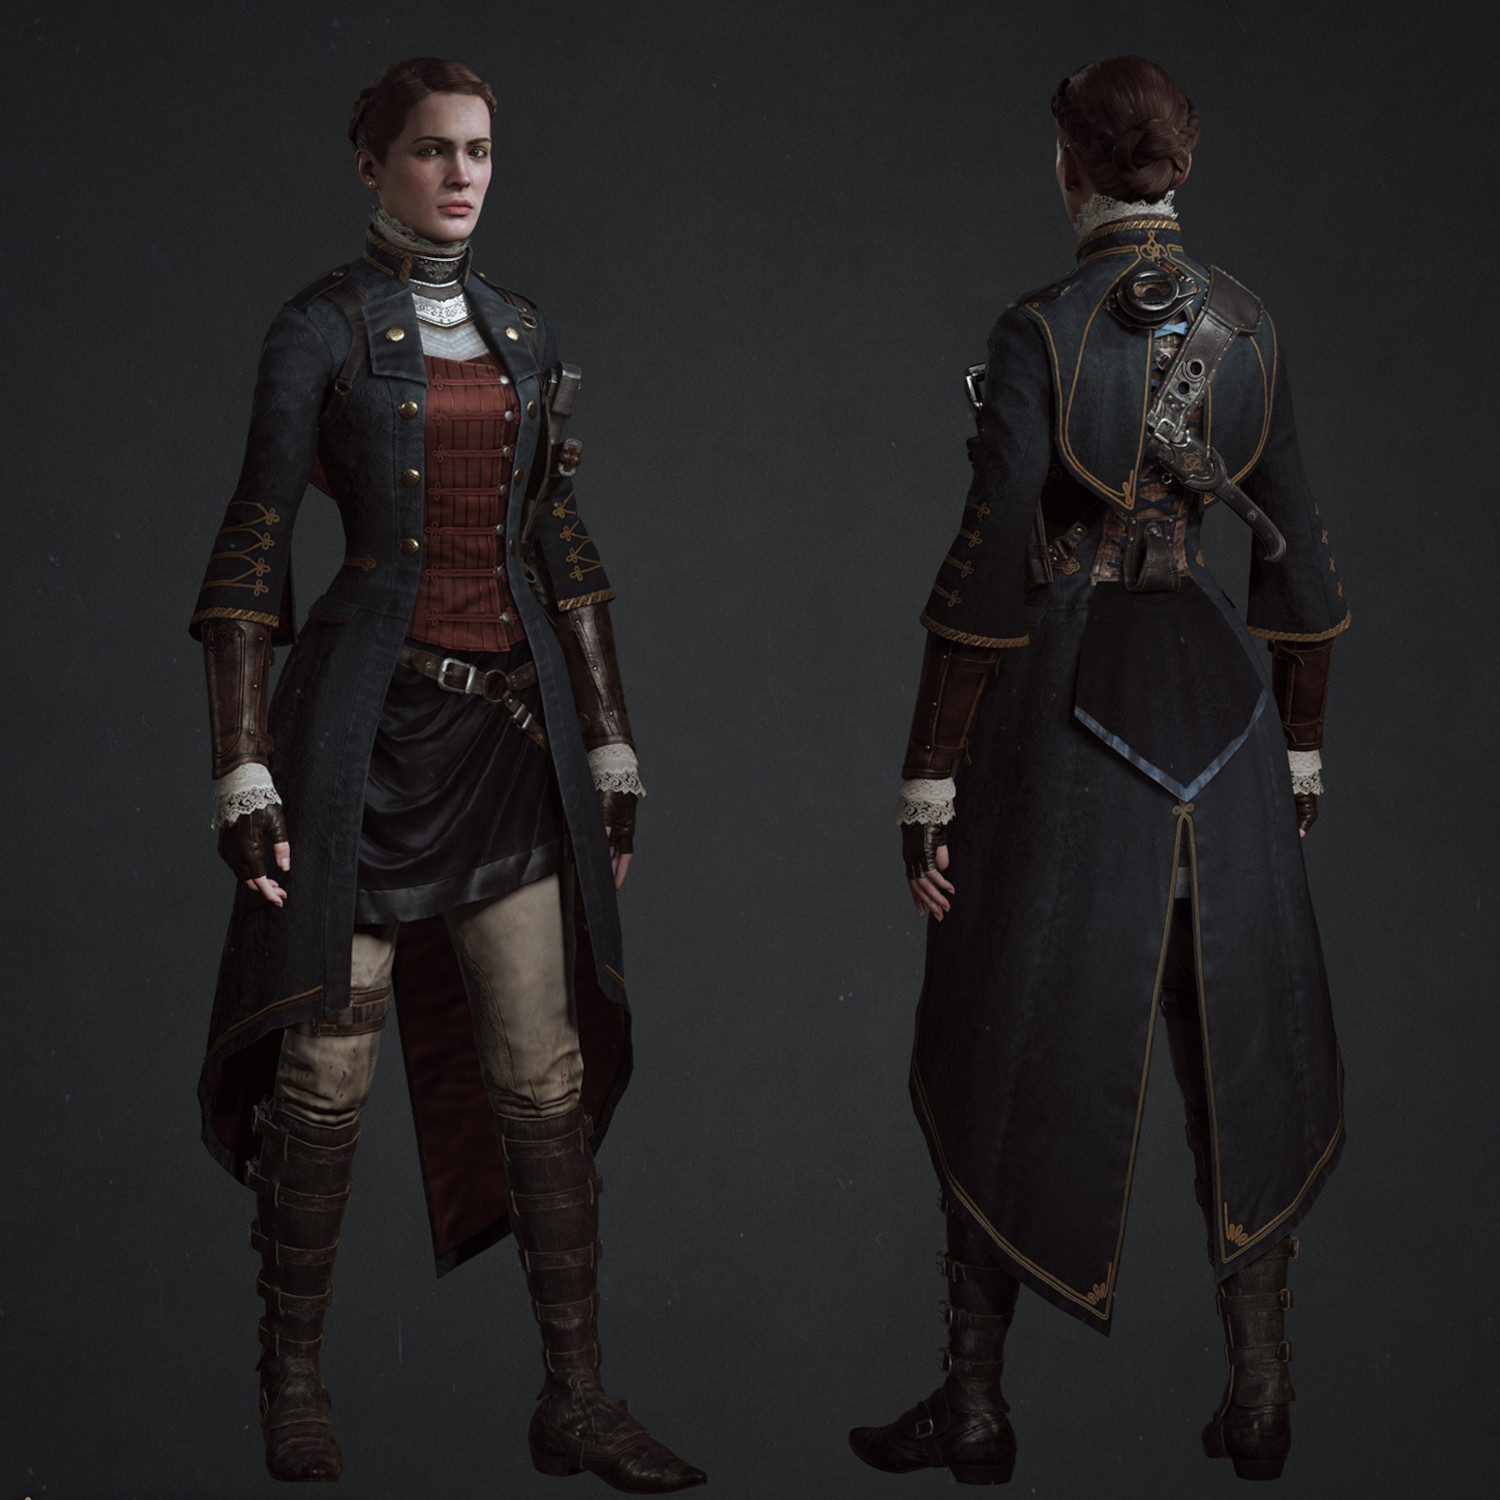 6 Female Steampunk Video Game Characters with Superb Outfits